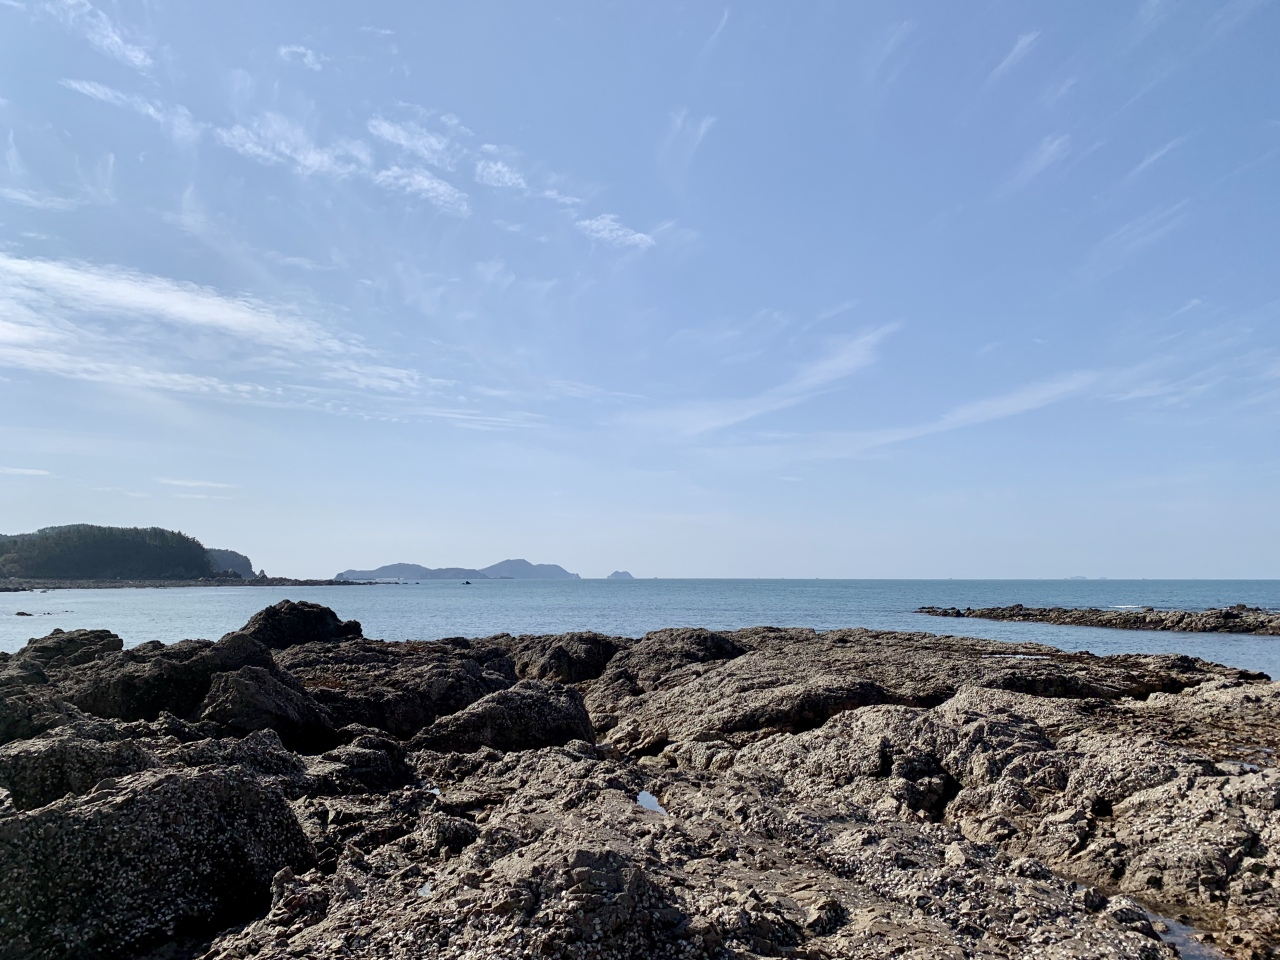 Wild oysters on the rocks at Padori Beach in Taean, South Chungcheong Province (Im Eun-byel / The Korea Herald)